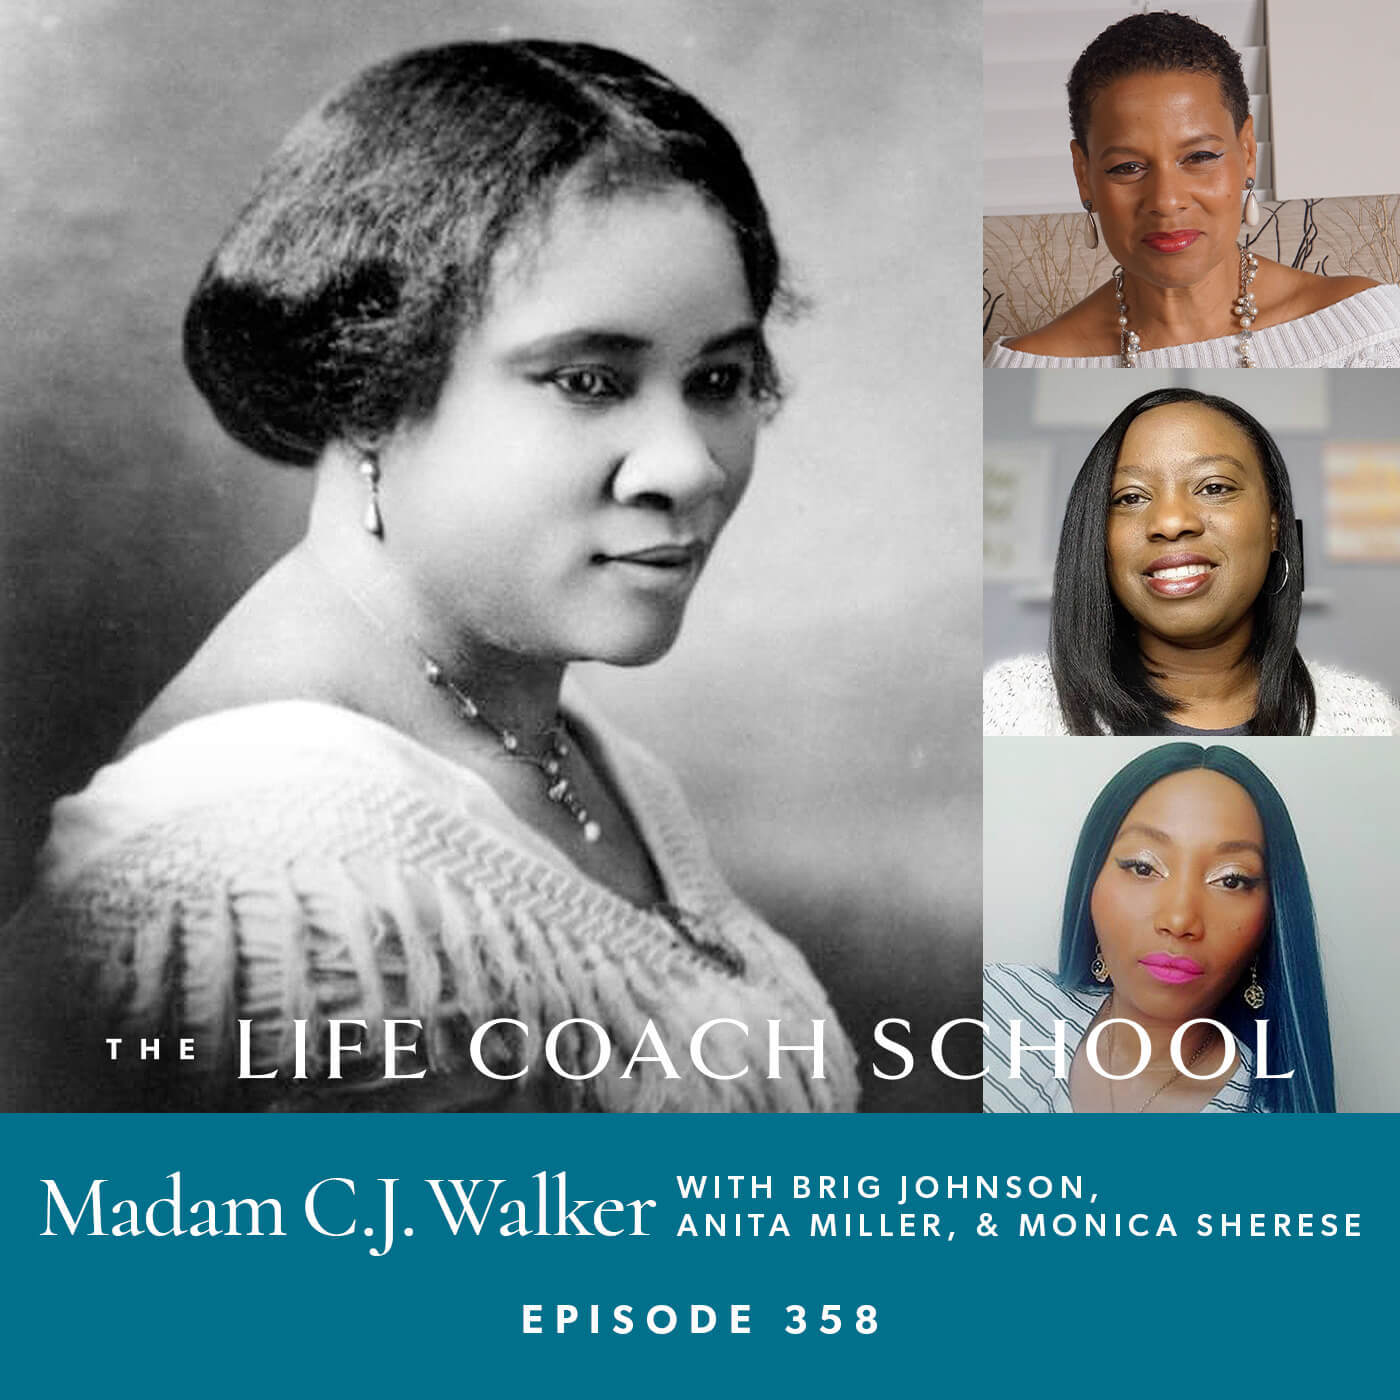 The Life Coach School Podcast with Brooke Castillo | Madam C.J. Walker with Brig Johnson, Anita Miller, and Monica Sherese